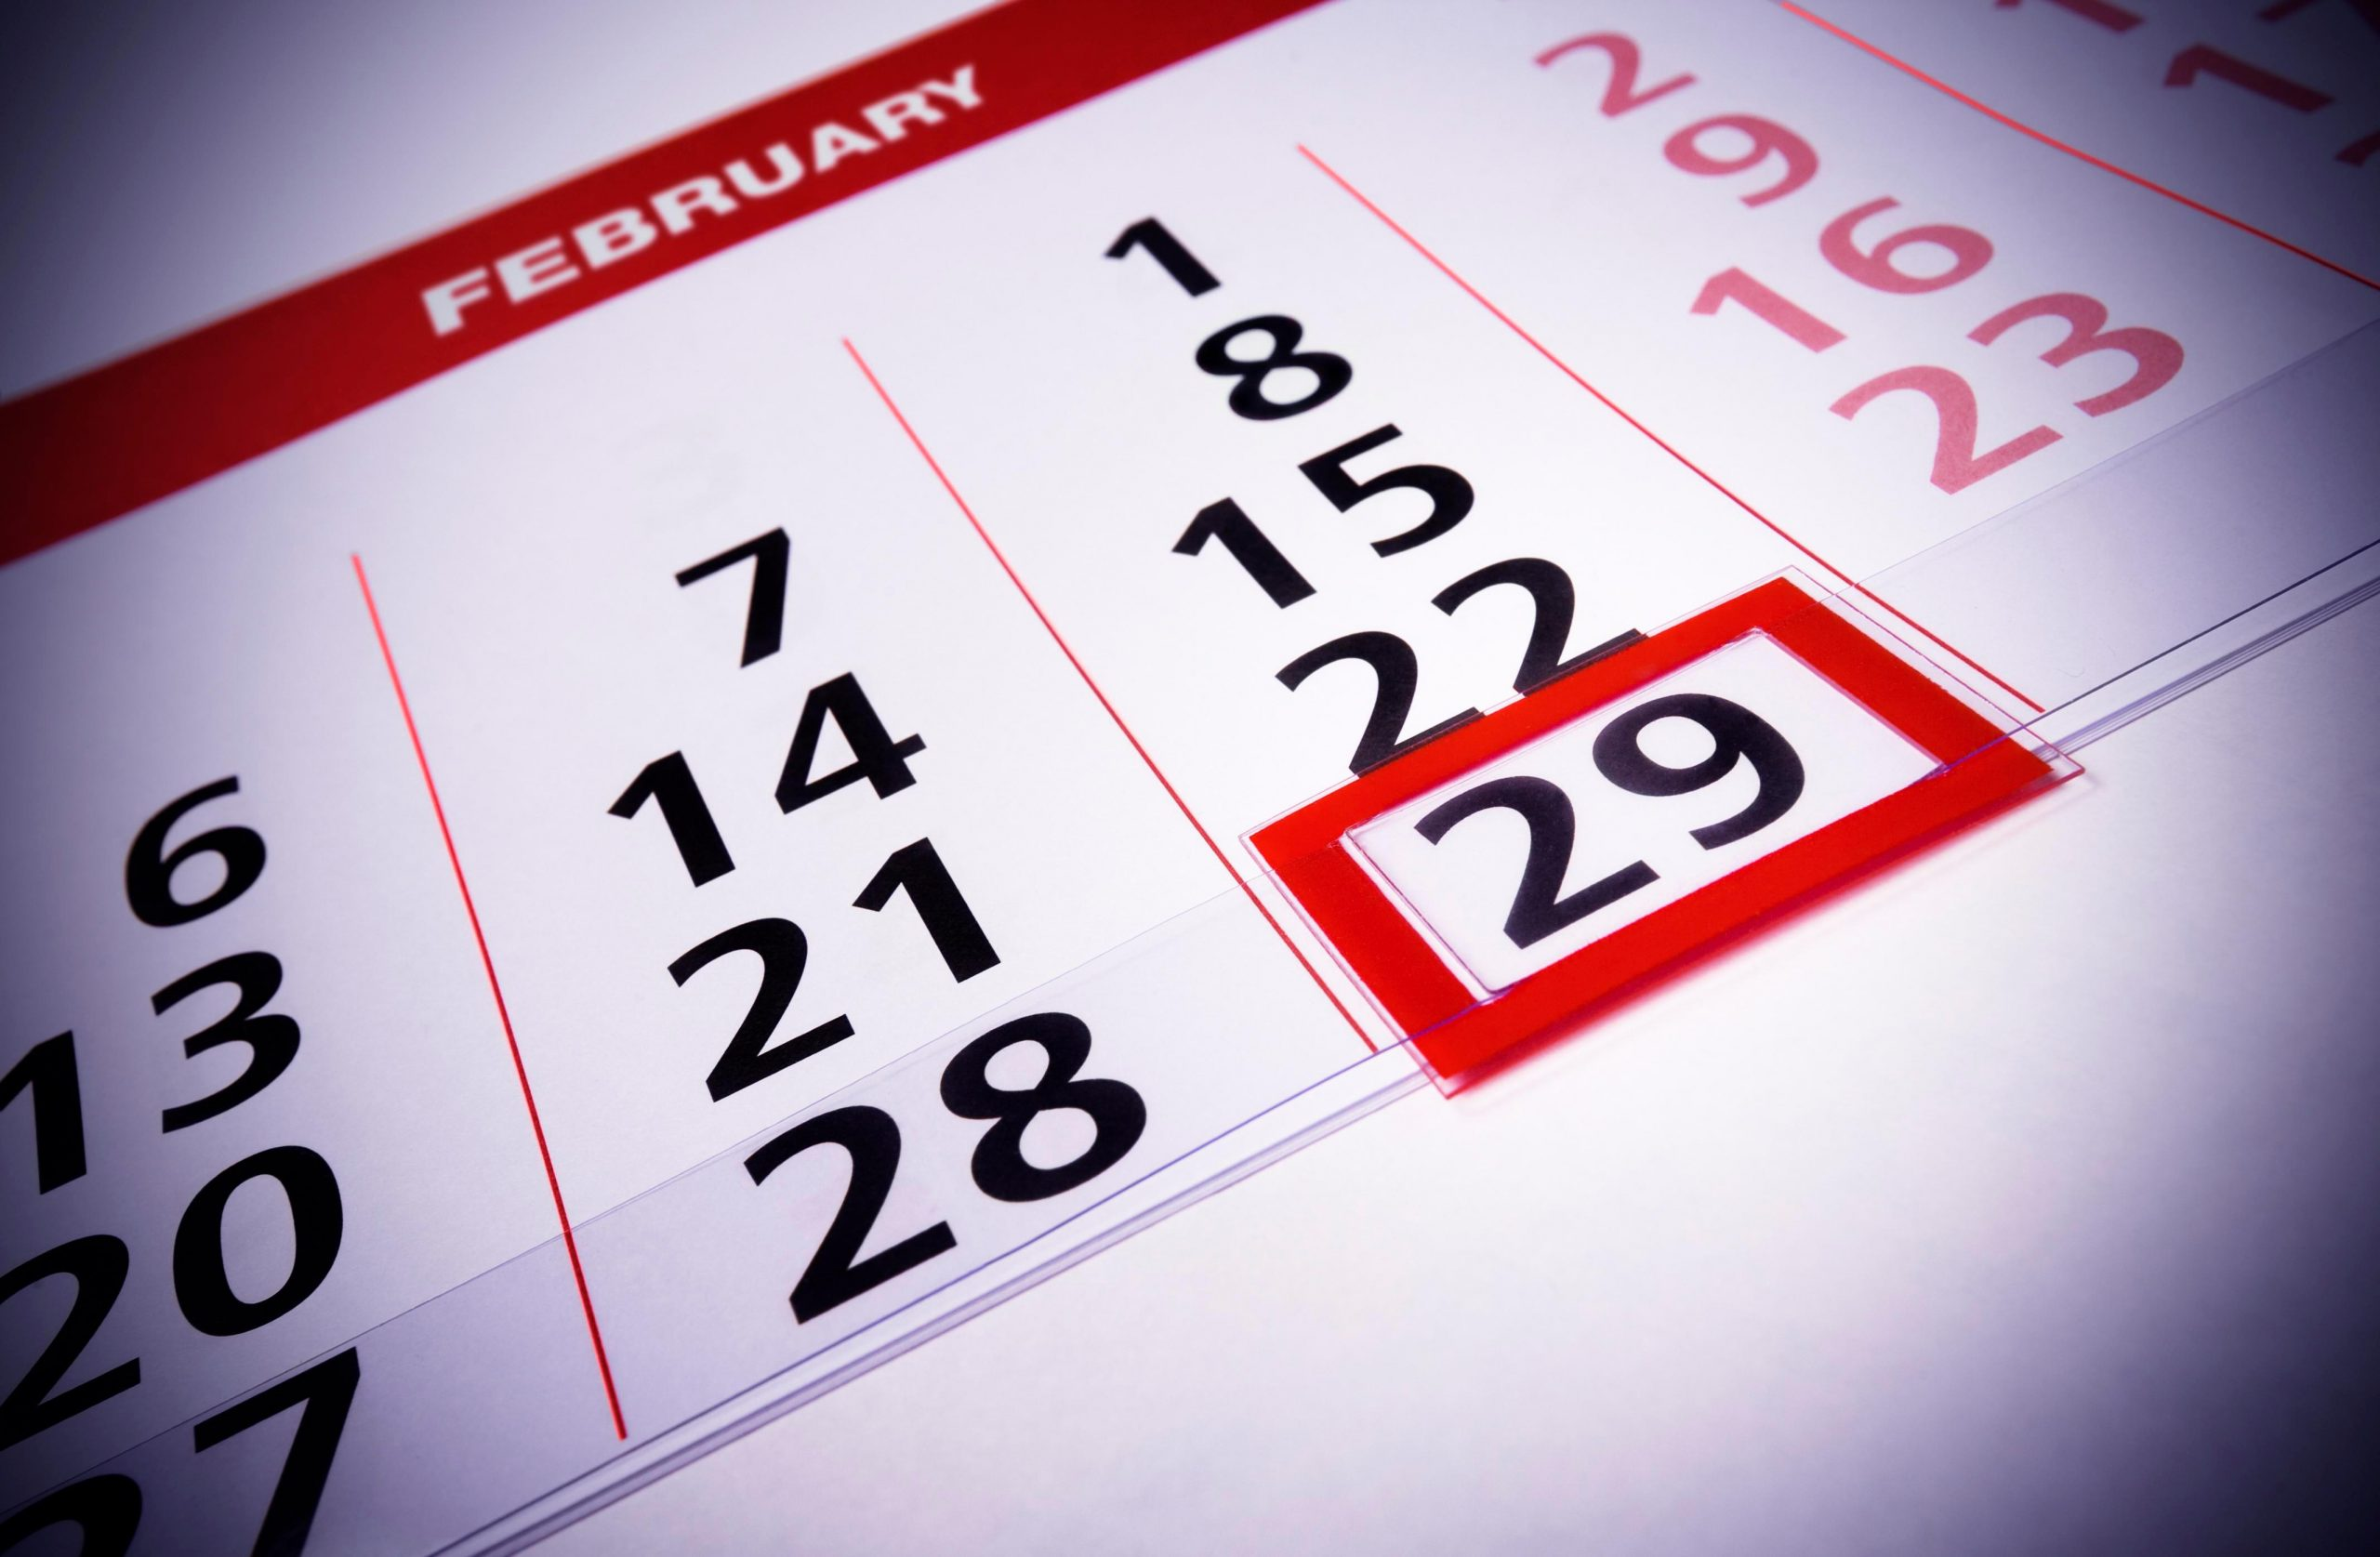 Leap Year 2020: Why is there a leap day?